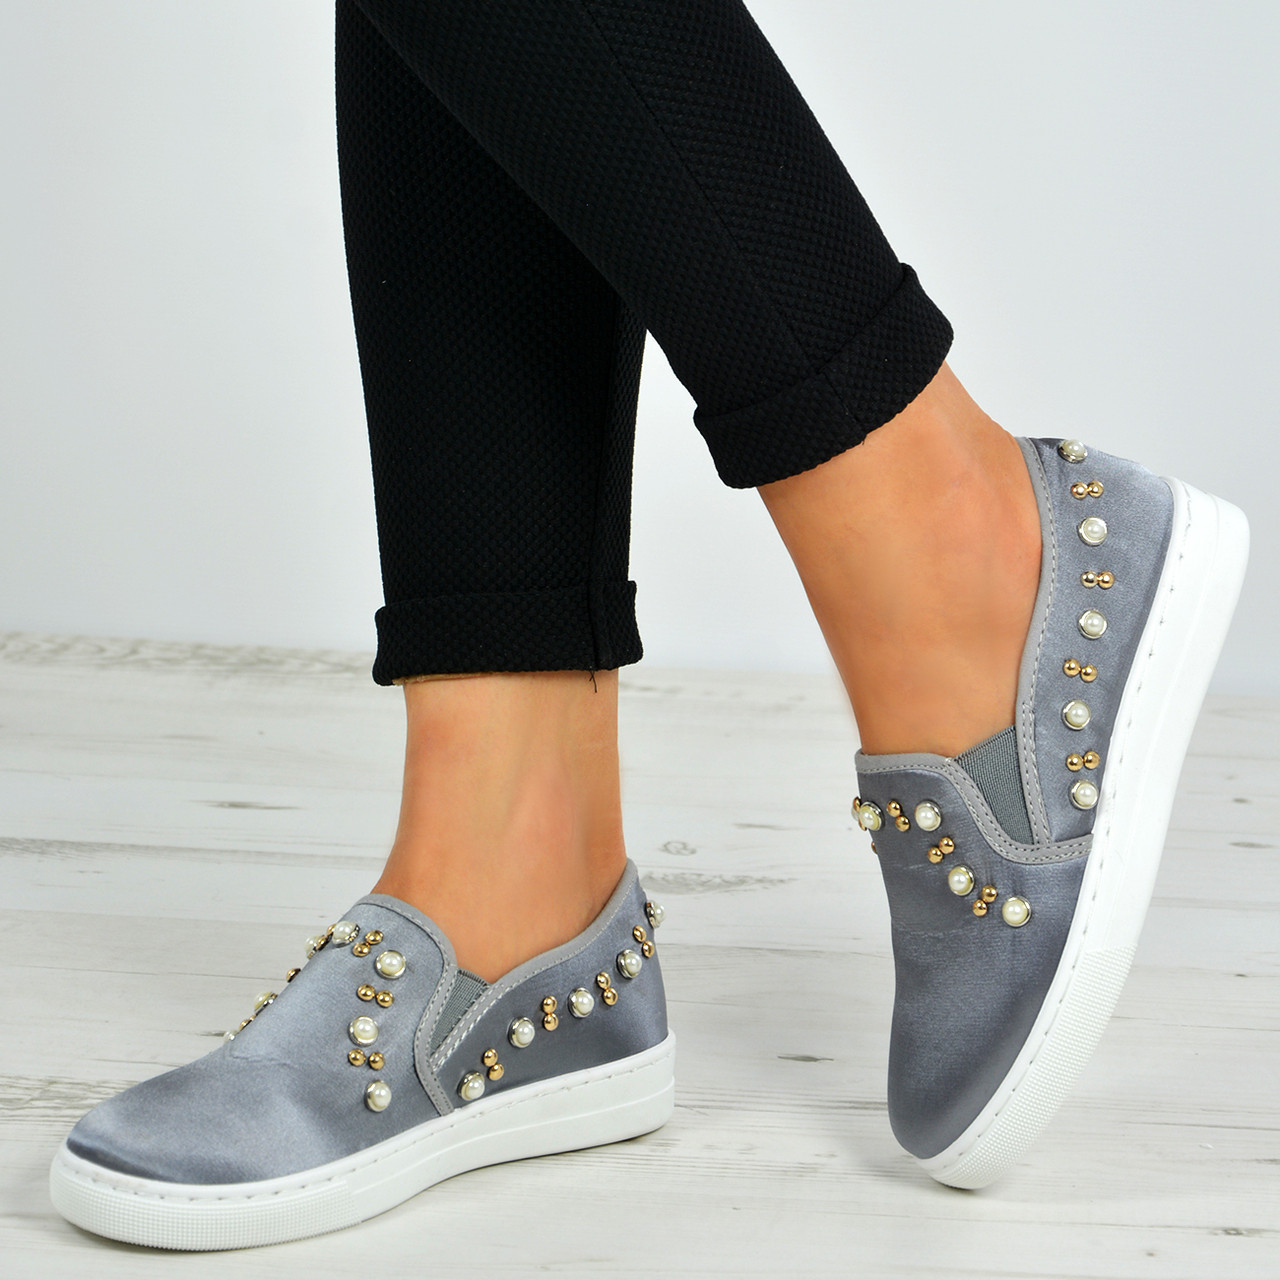 Flat Slip On Pearl Trainers Pumps Shoes